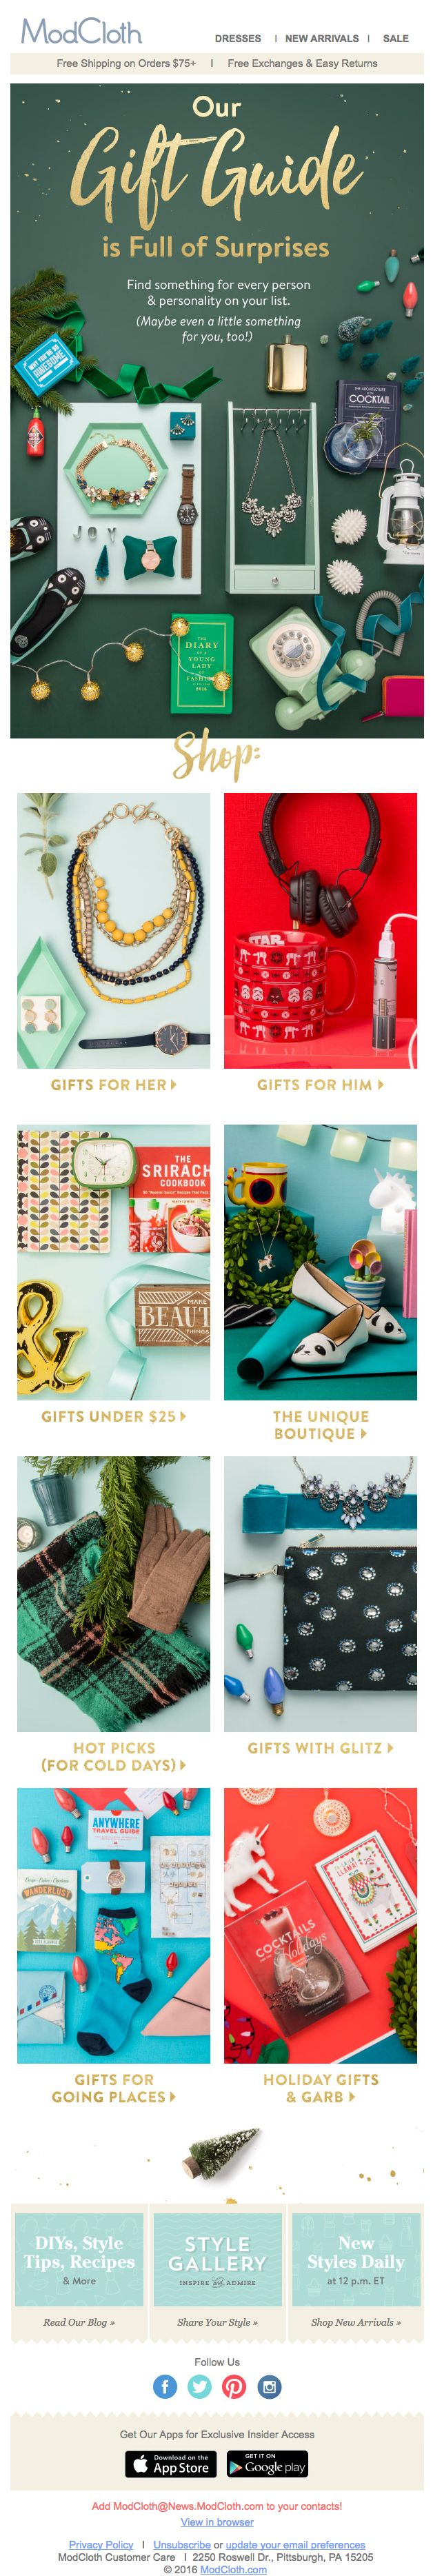 ModCloth gift guide email 2015